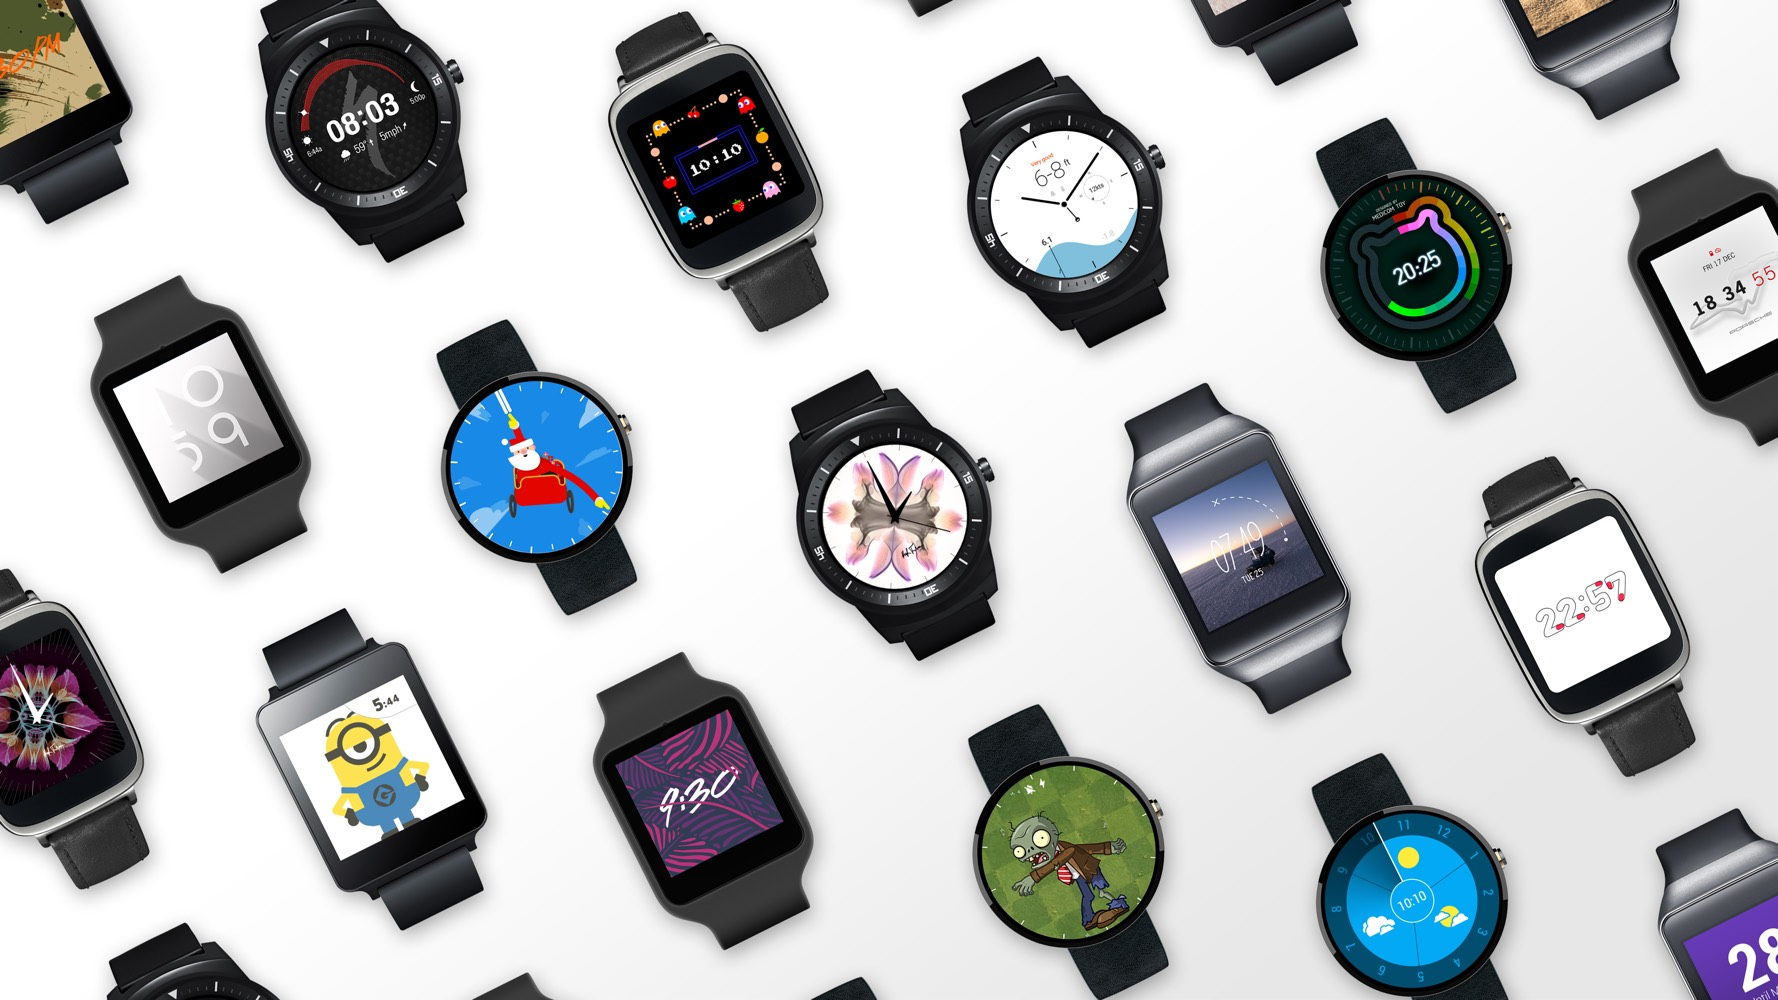 No Wi-Fi for some Android Wear watches